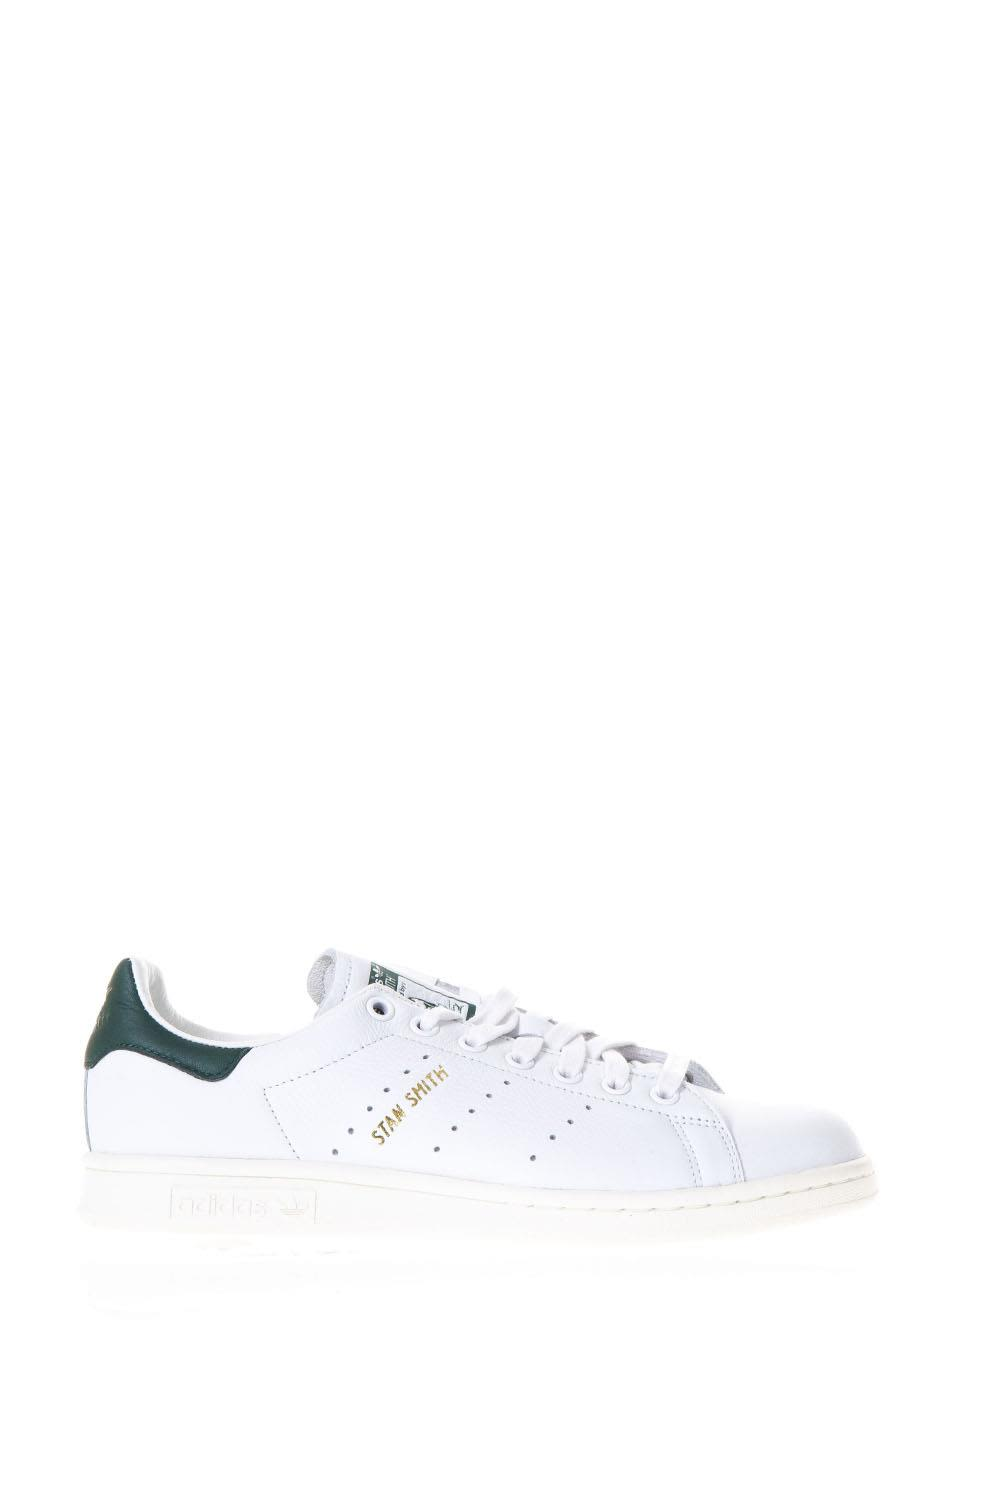 Adidas Originals Stan Smith Perforated Leather Shoes